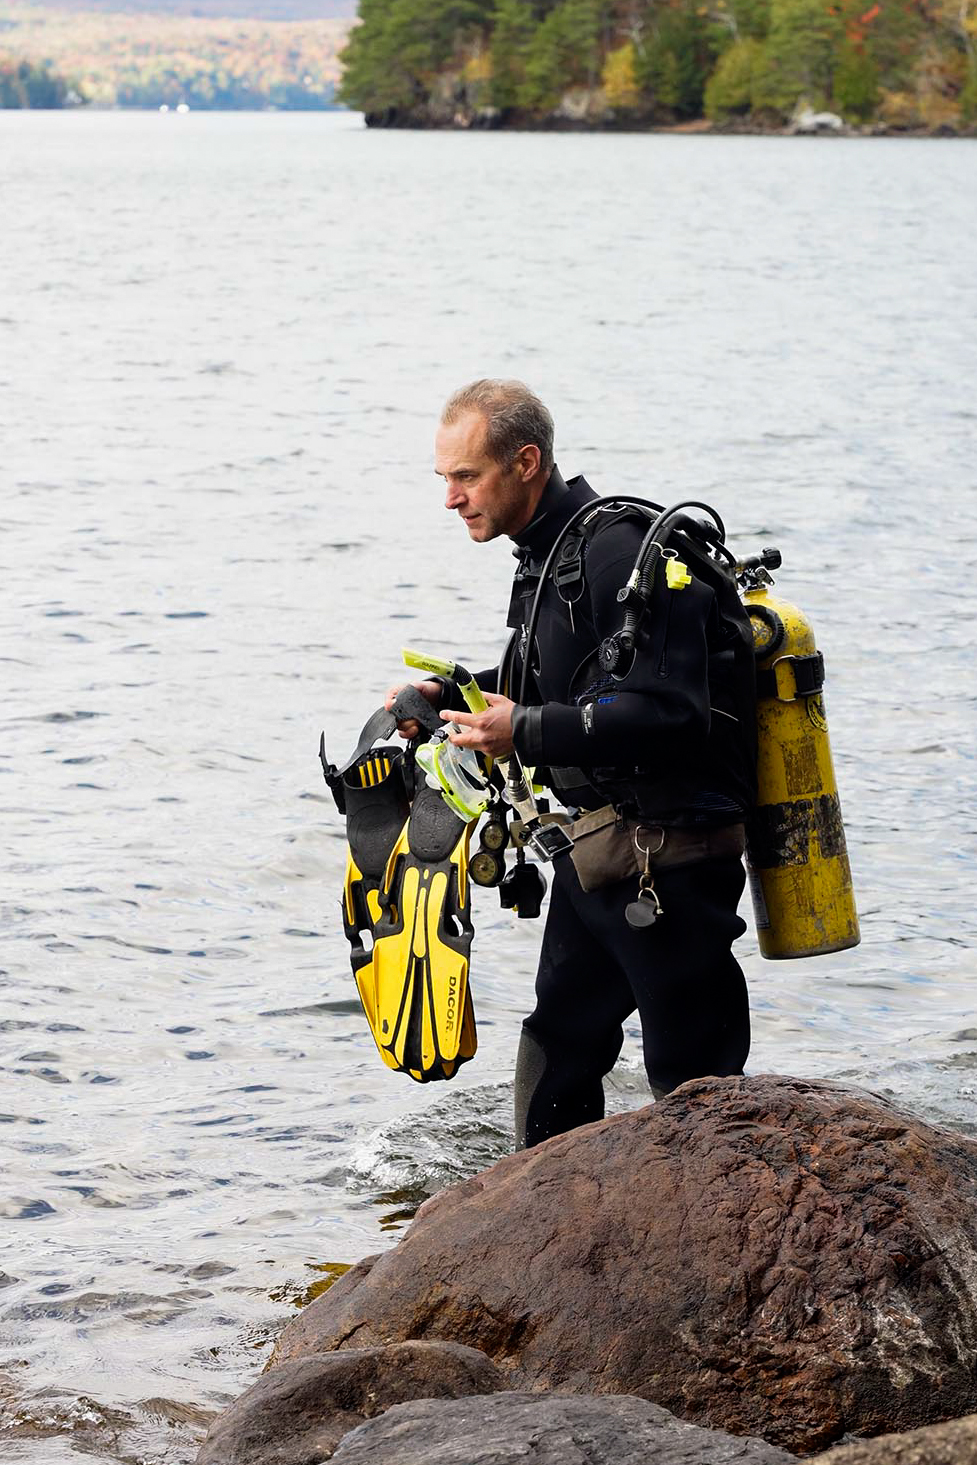 Scuba in Lake Memphremagog